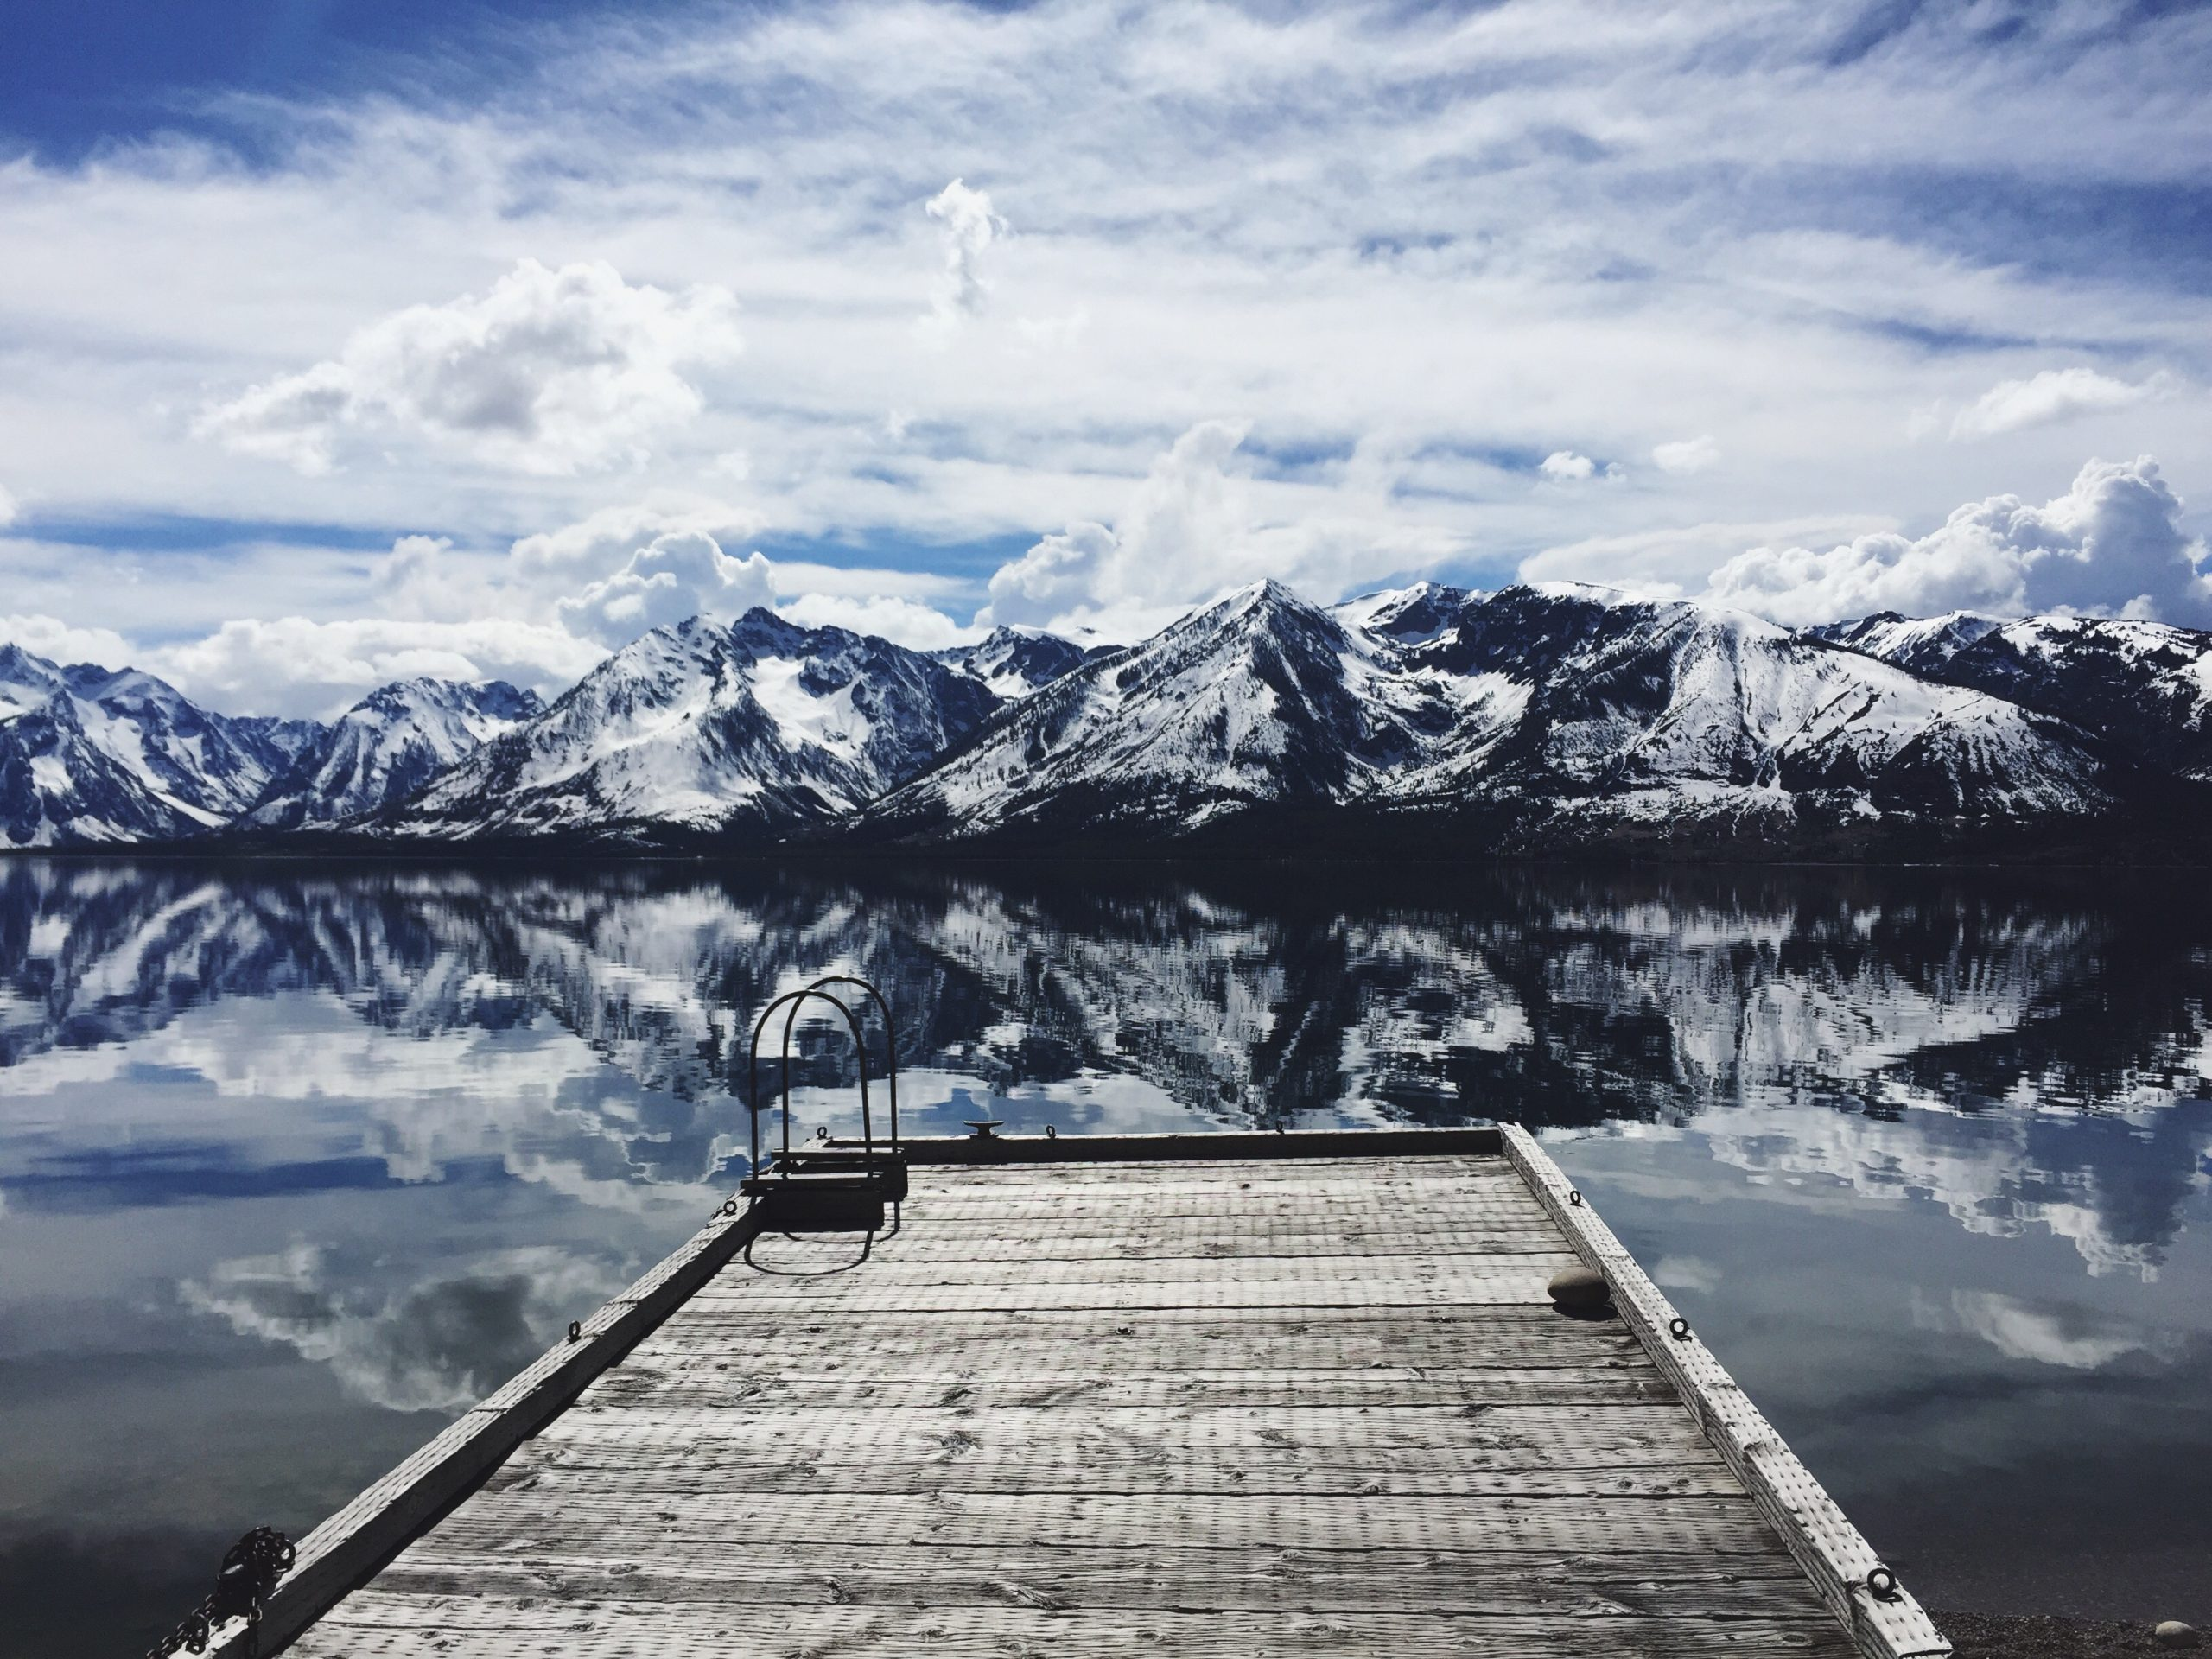 A wooden-plank dock on the edge of a clear lake with snowy mountains in the background